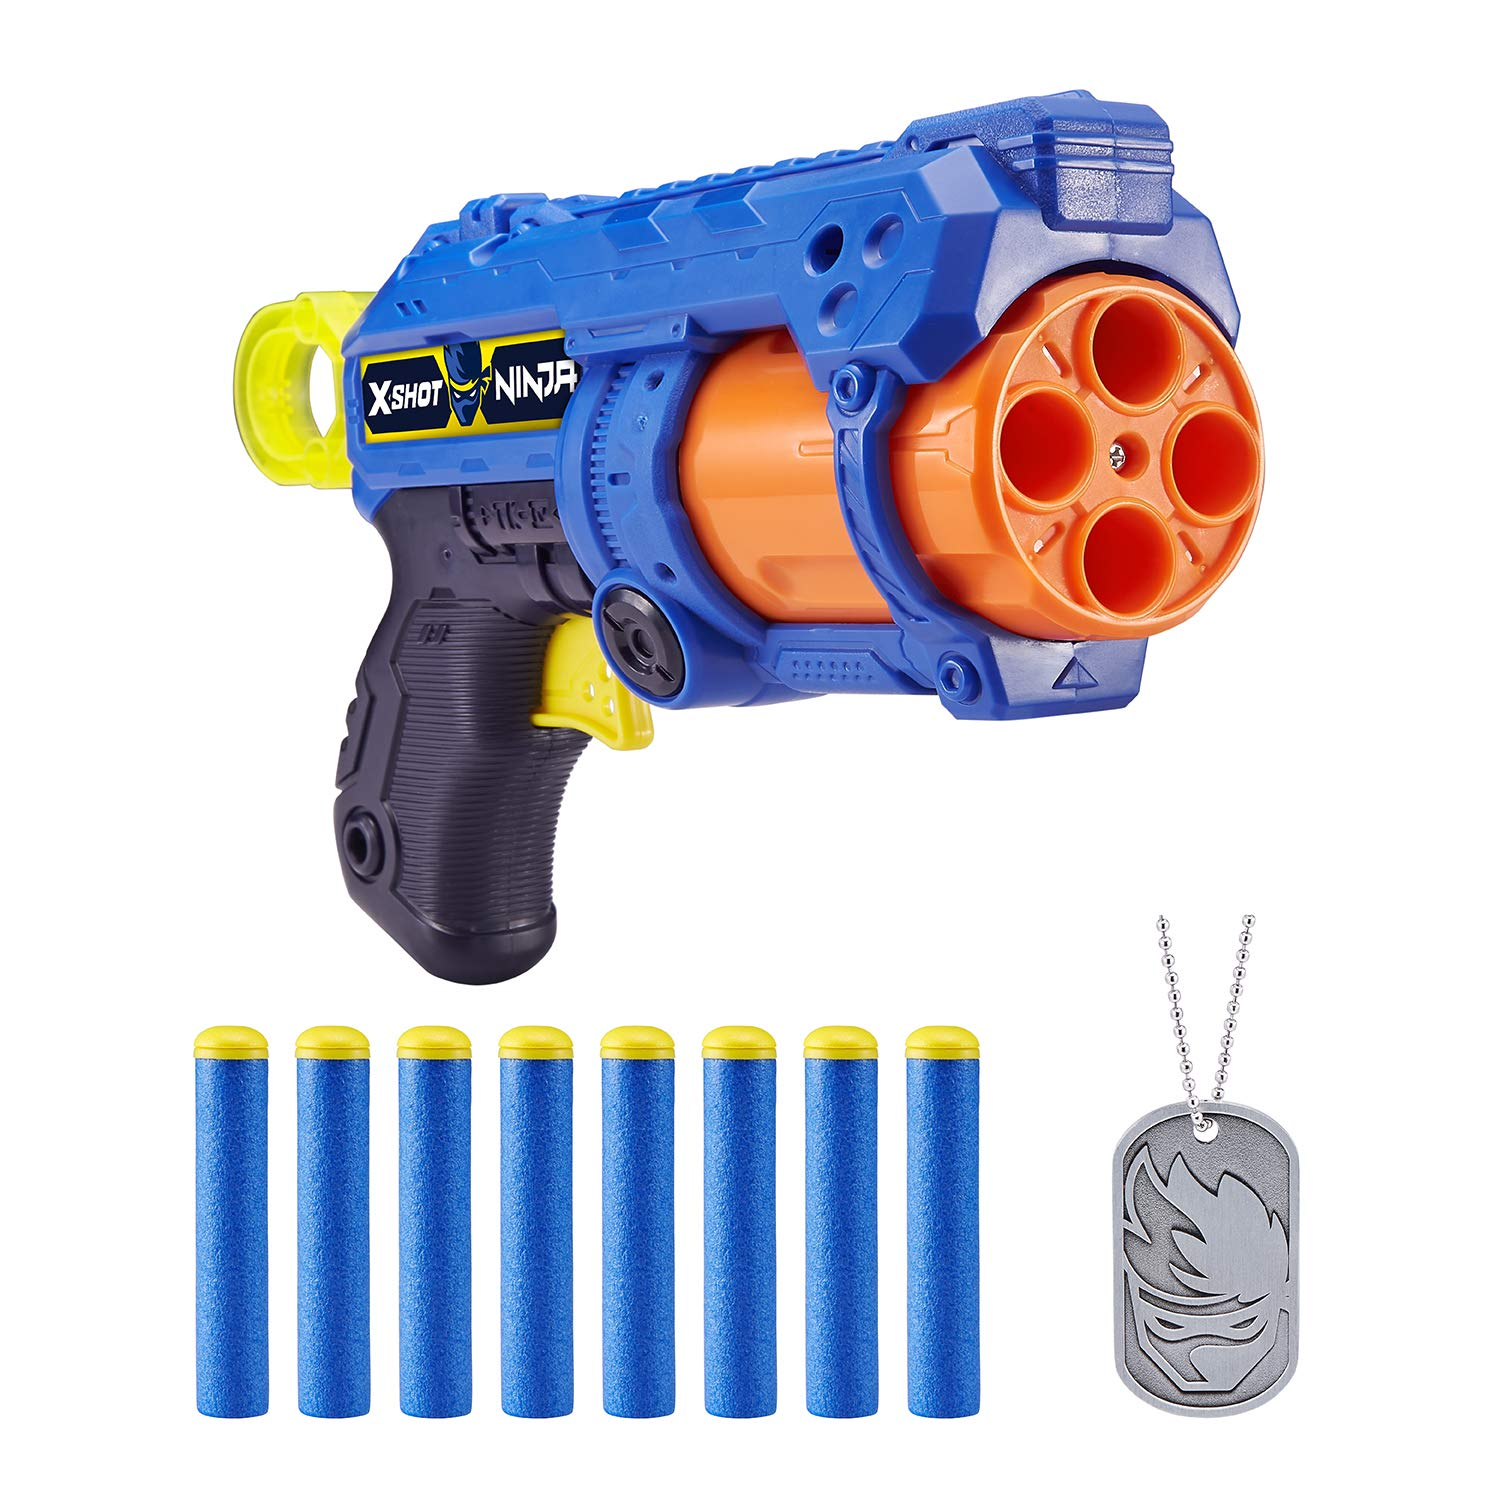 XShot Ninja No Rez Foam Dart Blaster (8 Darts, 1 Dog-Tag) Limited Edition by ZURU